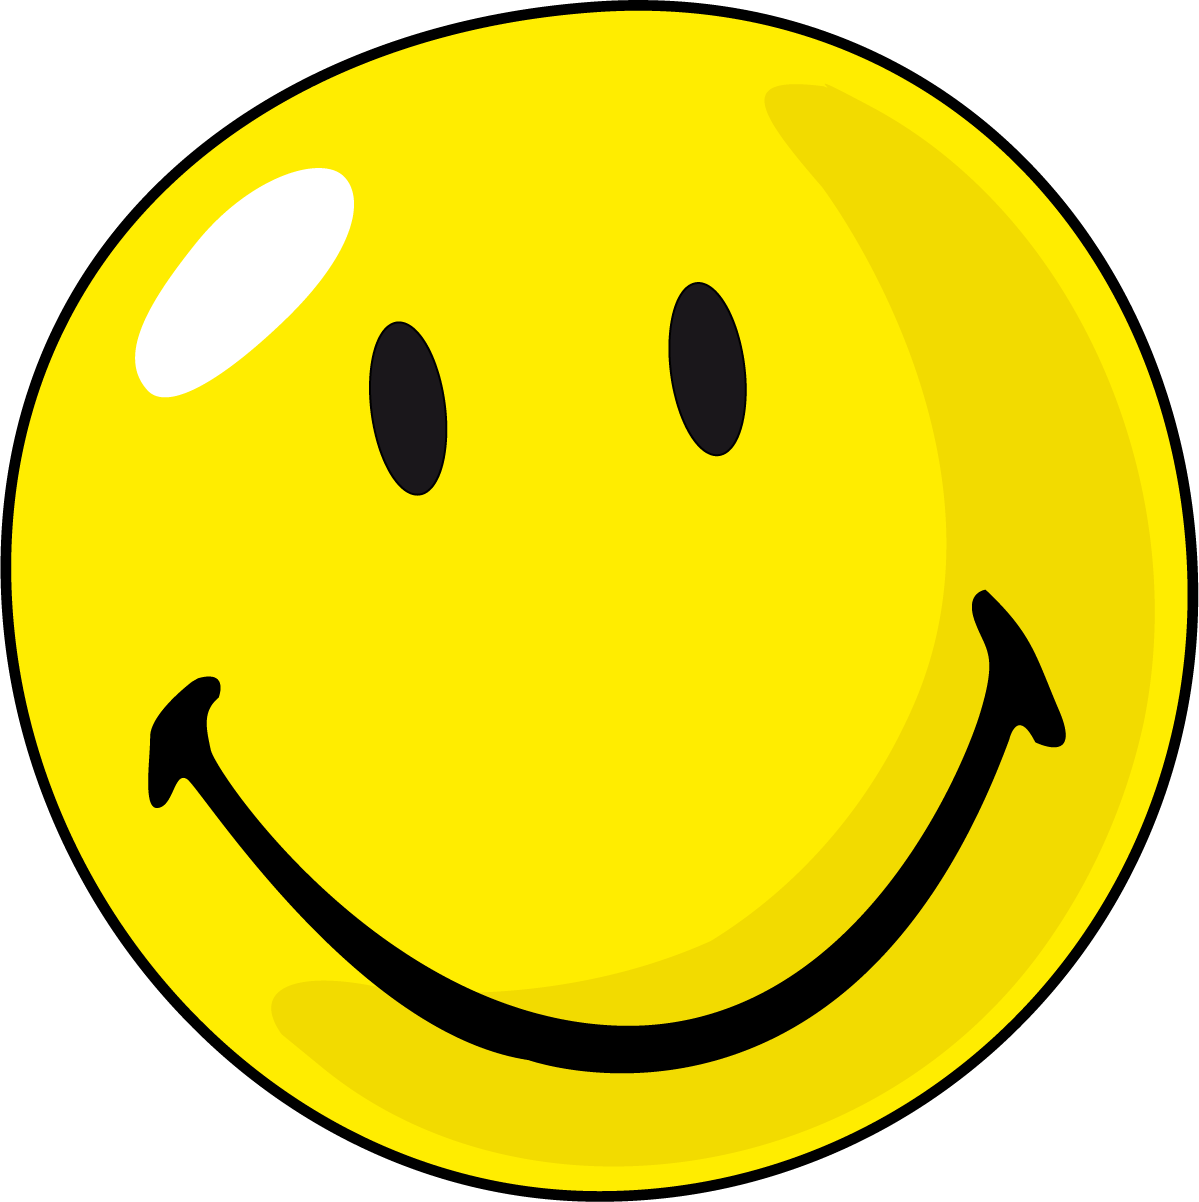 Smiley clipartly comclipartly com. Clipart smile content face